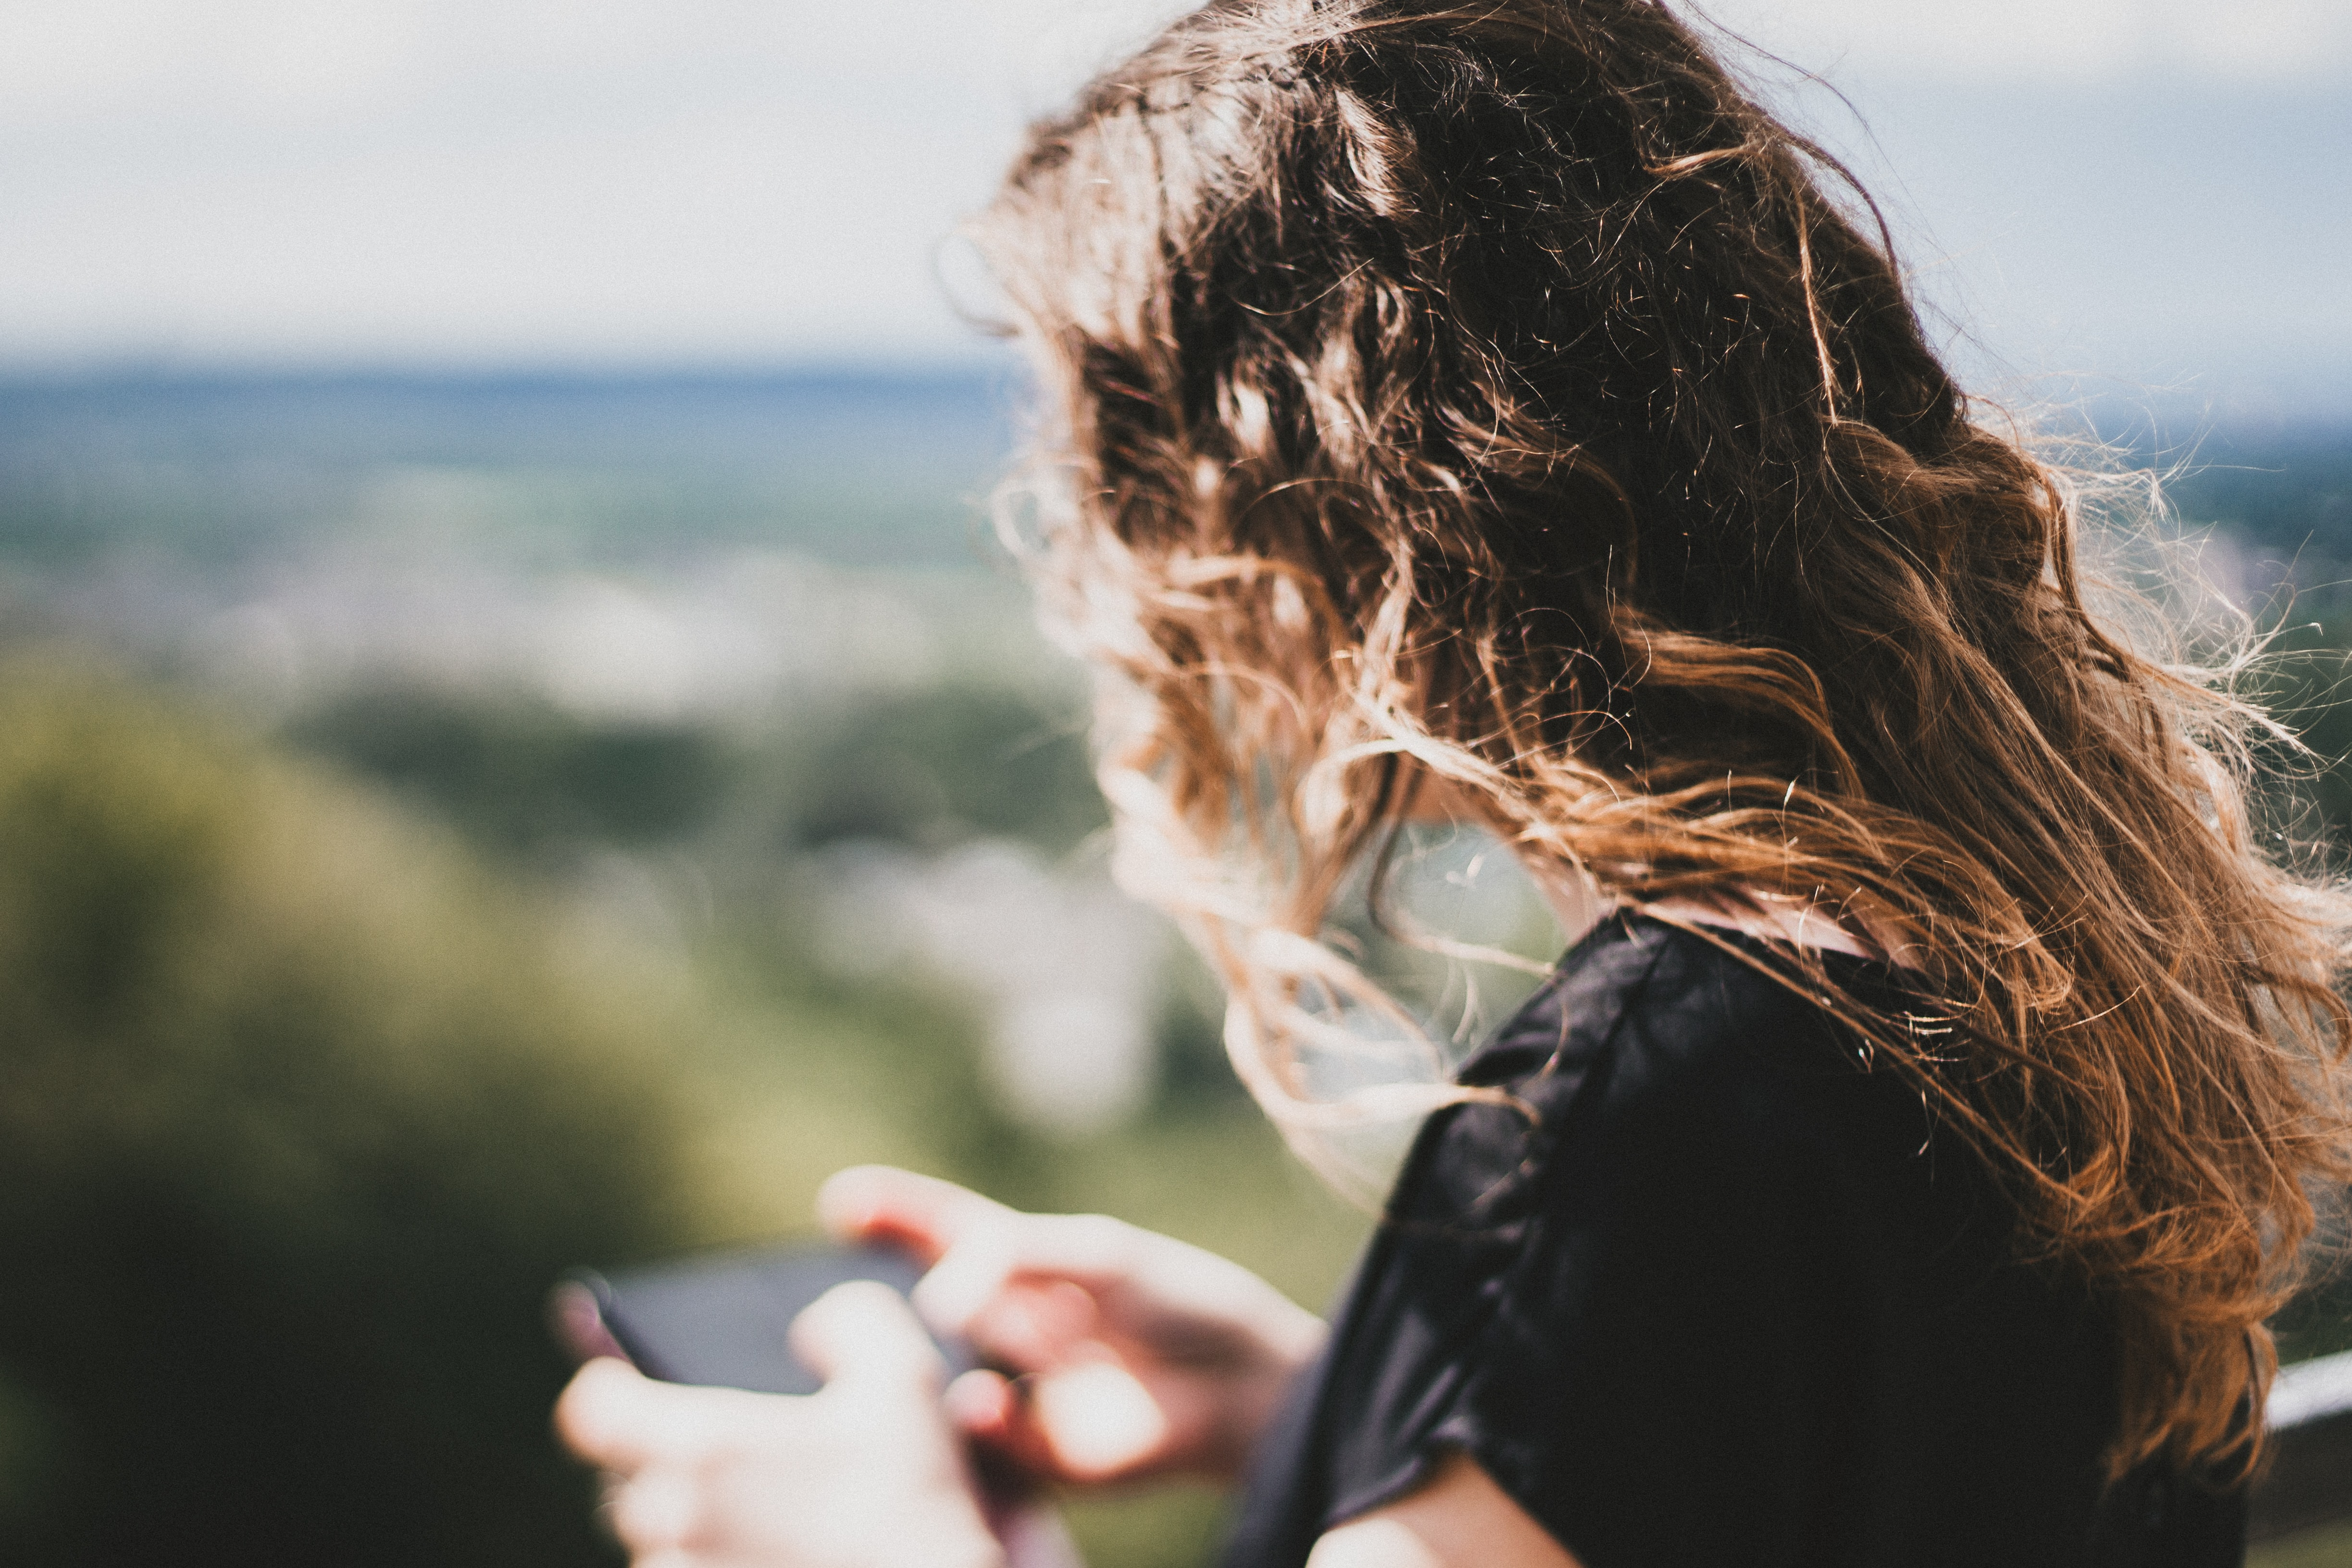 woman with long curly blonde hair using smartphone